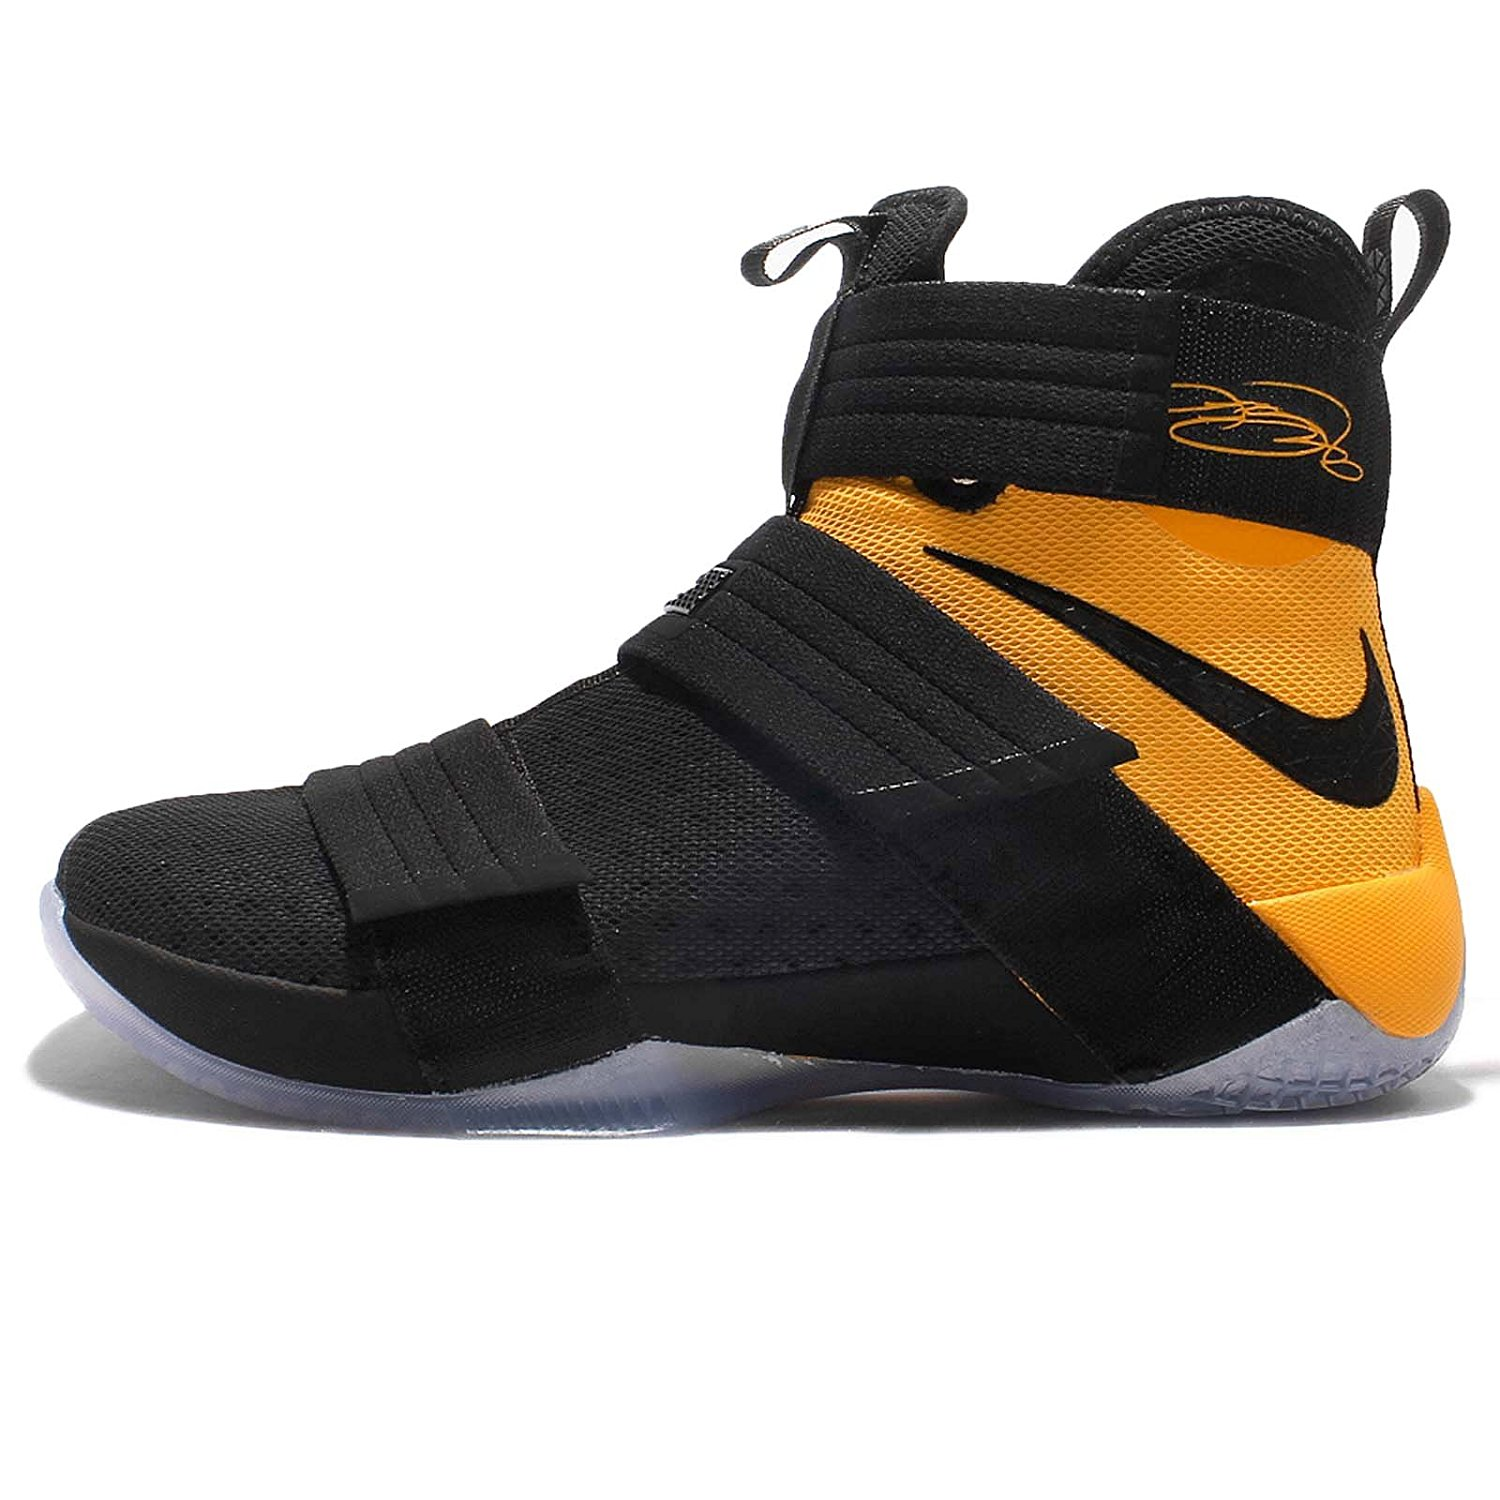 uk availability 72650 45ae3 Buy Nike Men's Lebron Soldier IX EP, SPRITE-GYM ROYAL ...